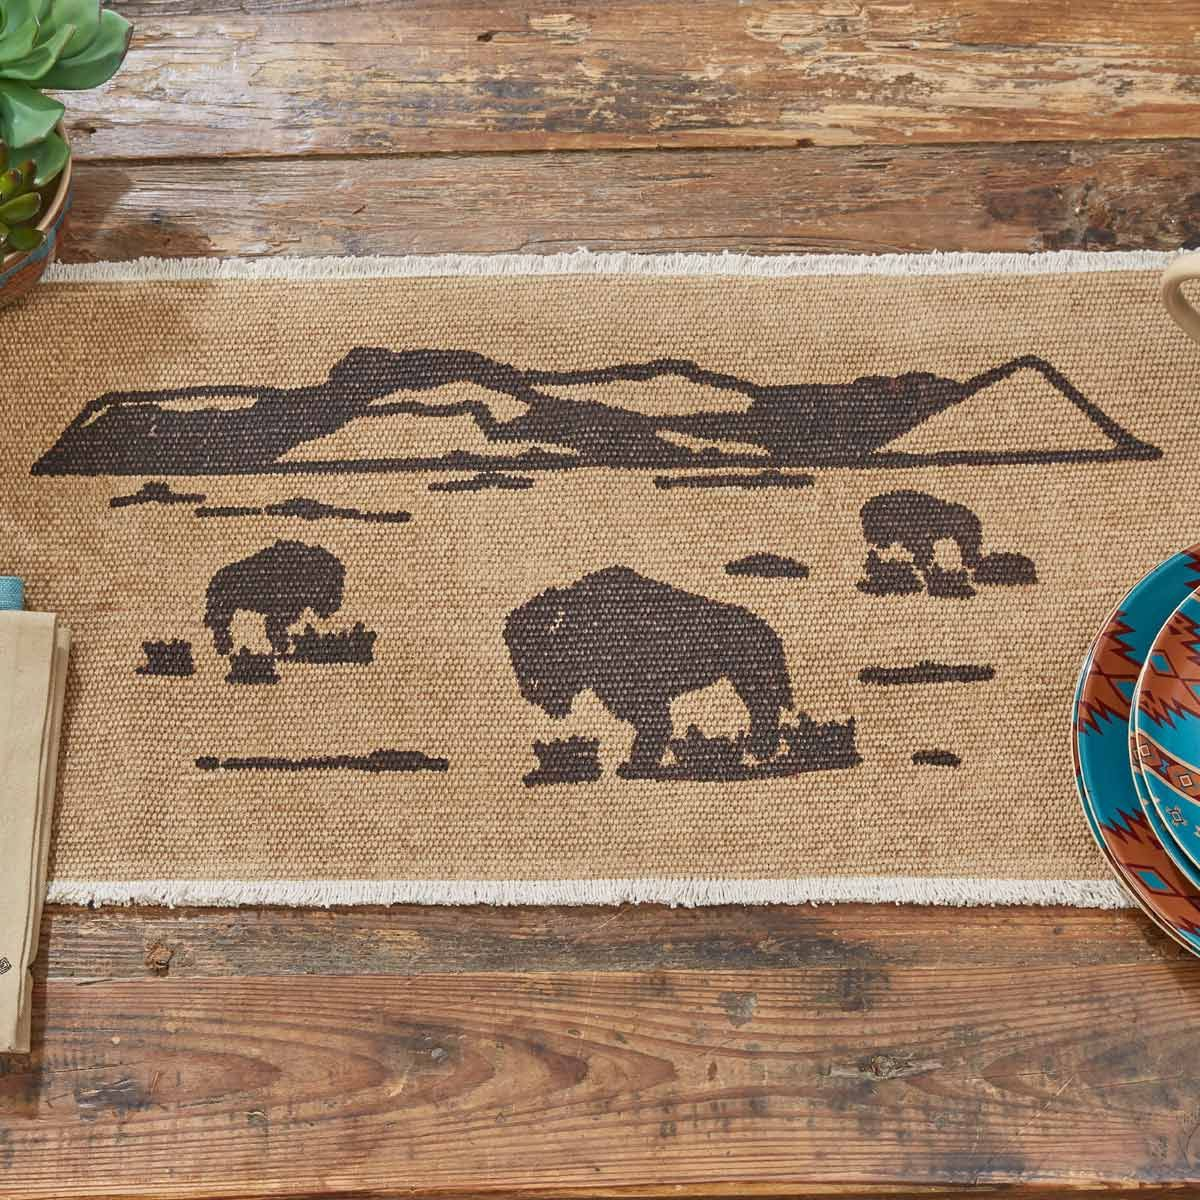 Bison Plain Table Runner - 54 Inch